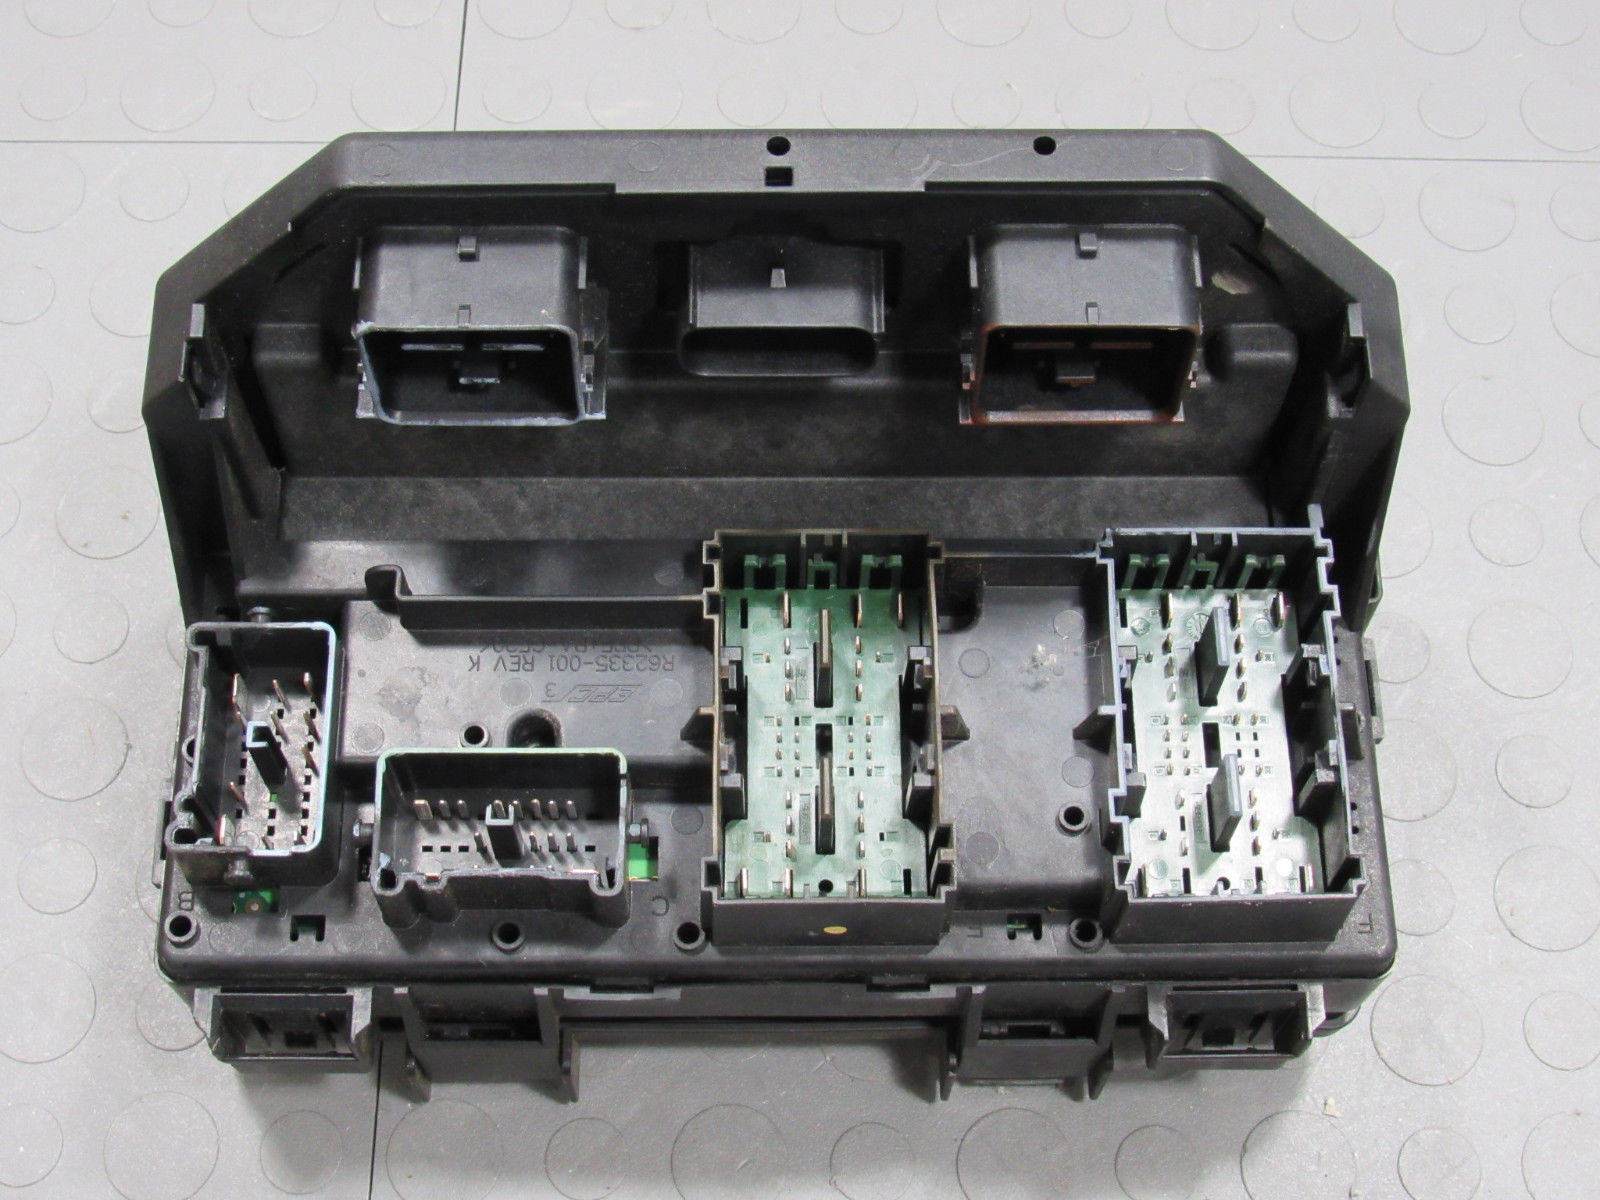 fuse box for jeep liberty wiring library. Black Bedroom Furniture Sets. Home Design Ideas